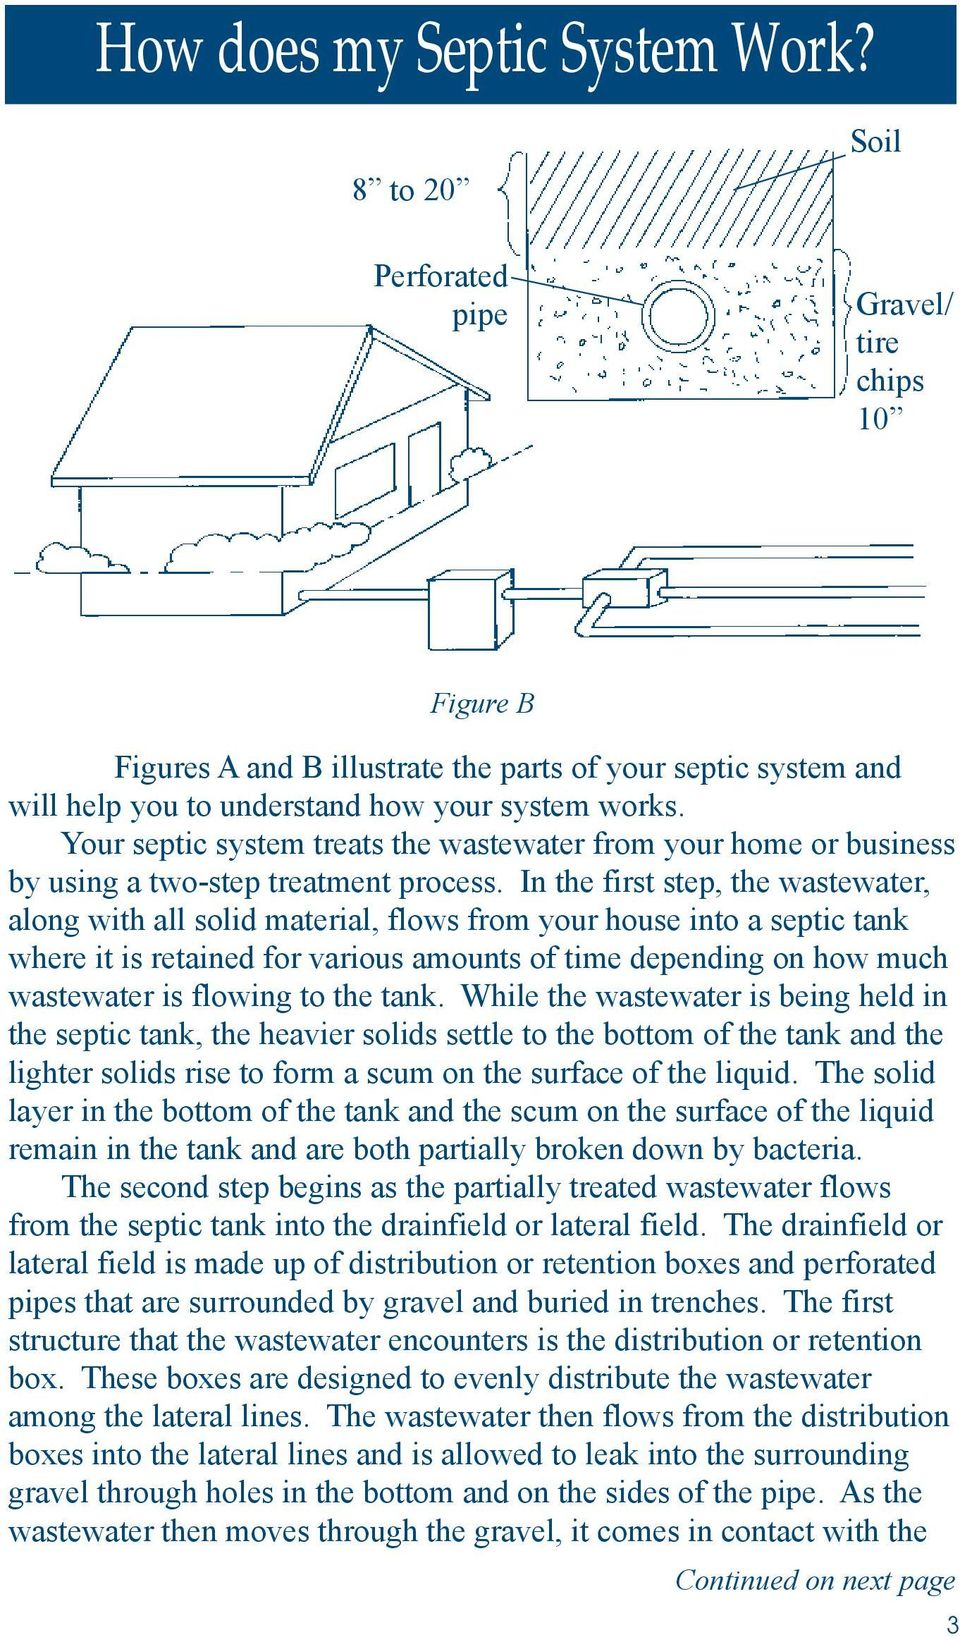 Your septic system treats the wastewater from your home or business by using a two-step treatment process.